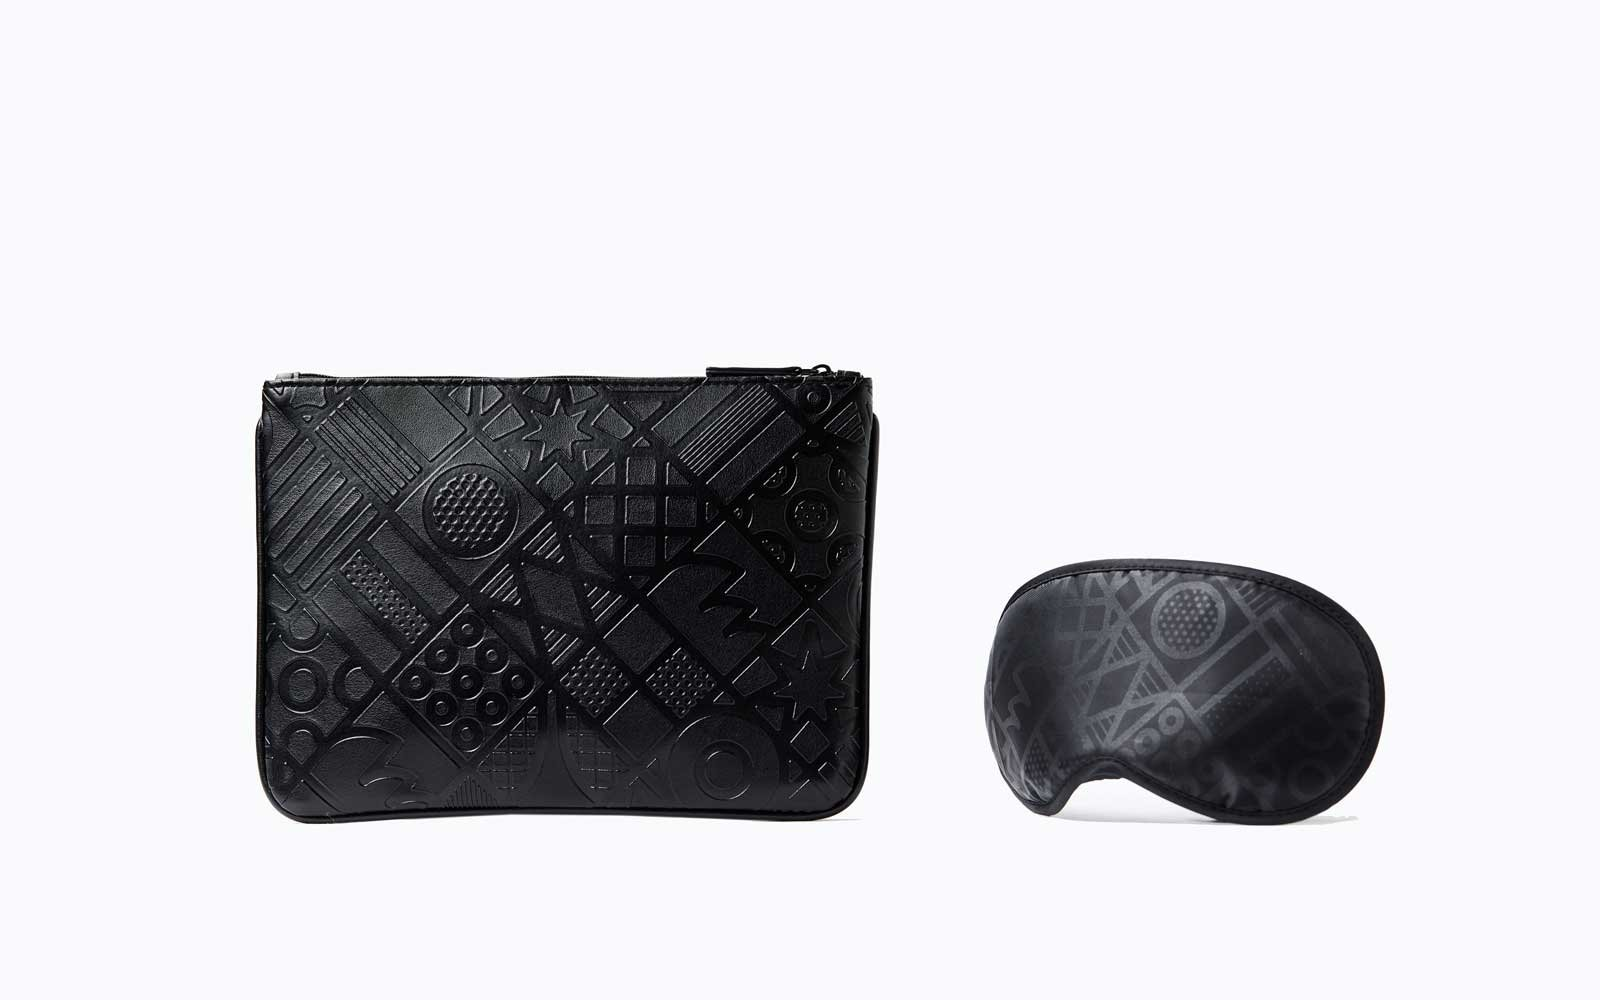 Qantas Oroton and Craig & Karl Limited-Edition Amenity Kit